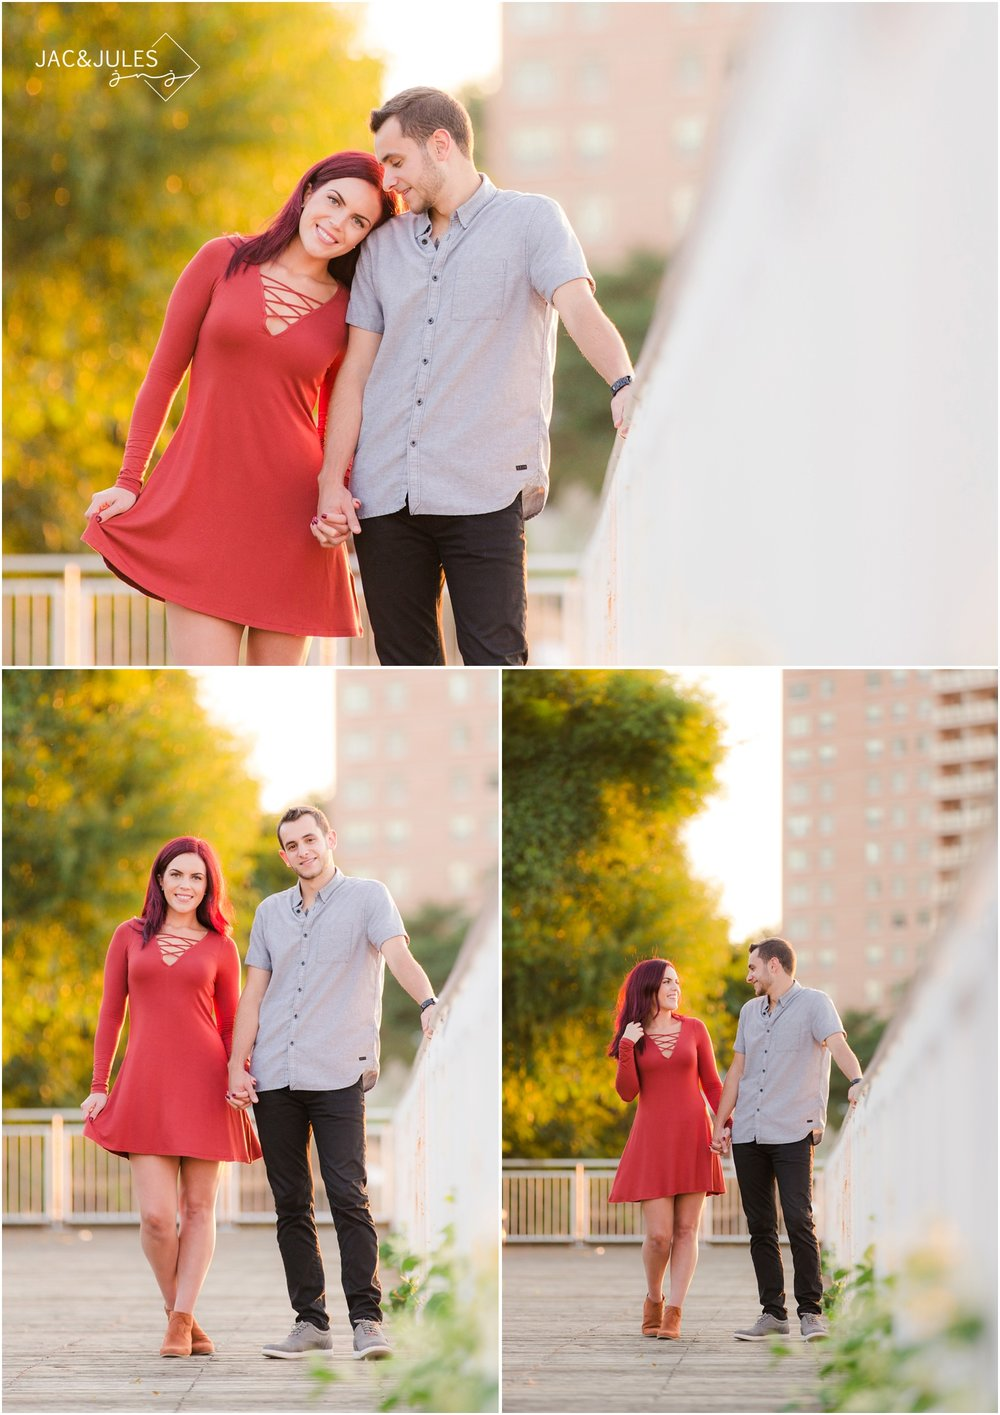 Pretty engagement photos in Red Bank, NJ